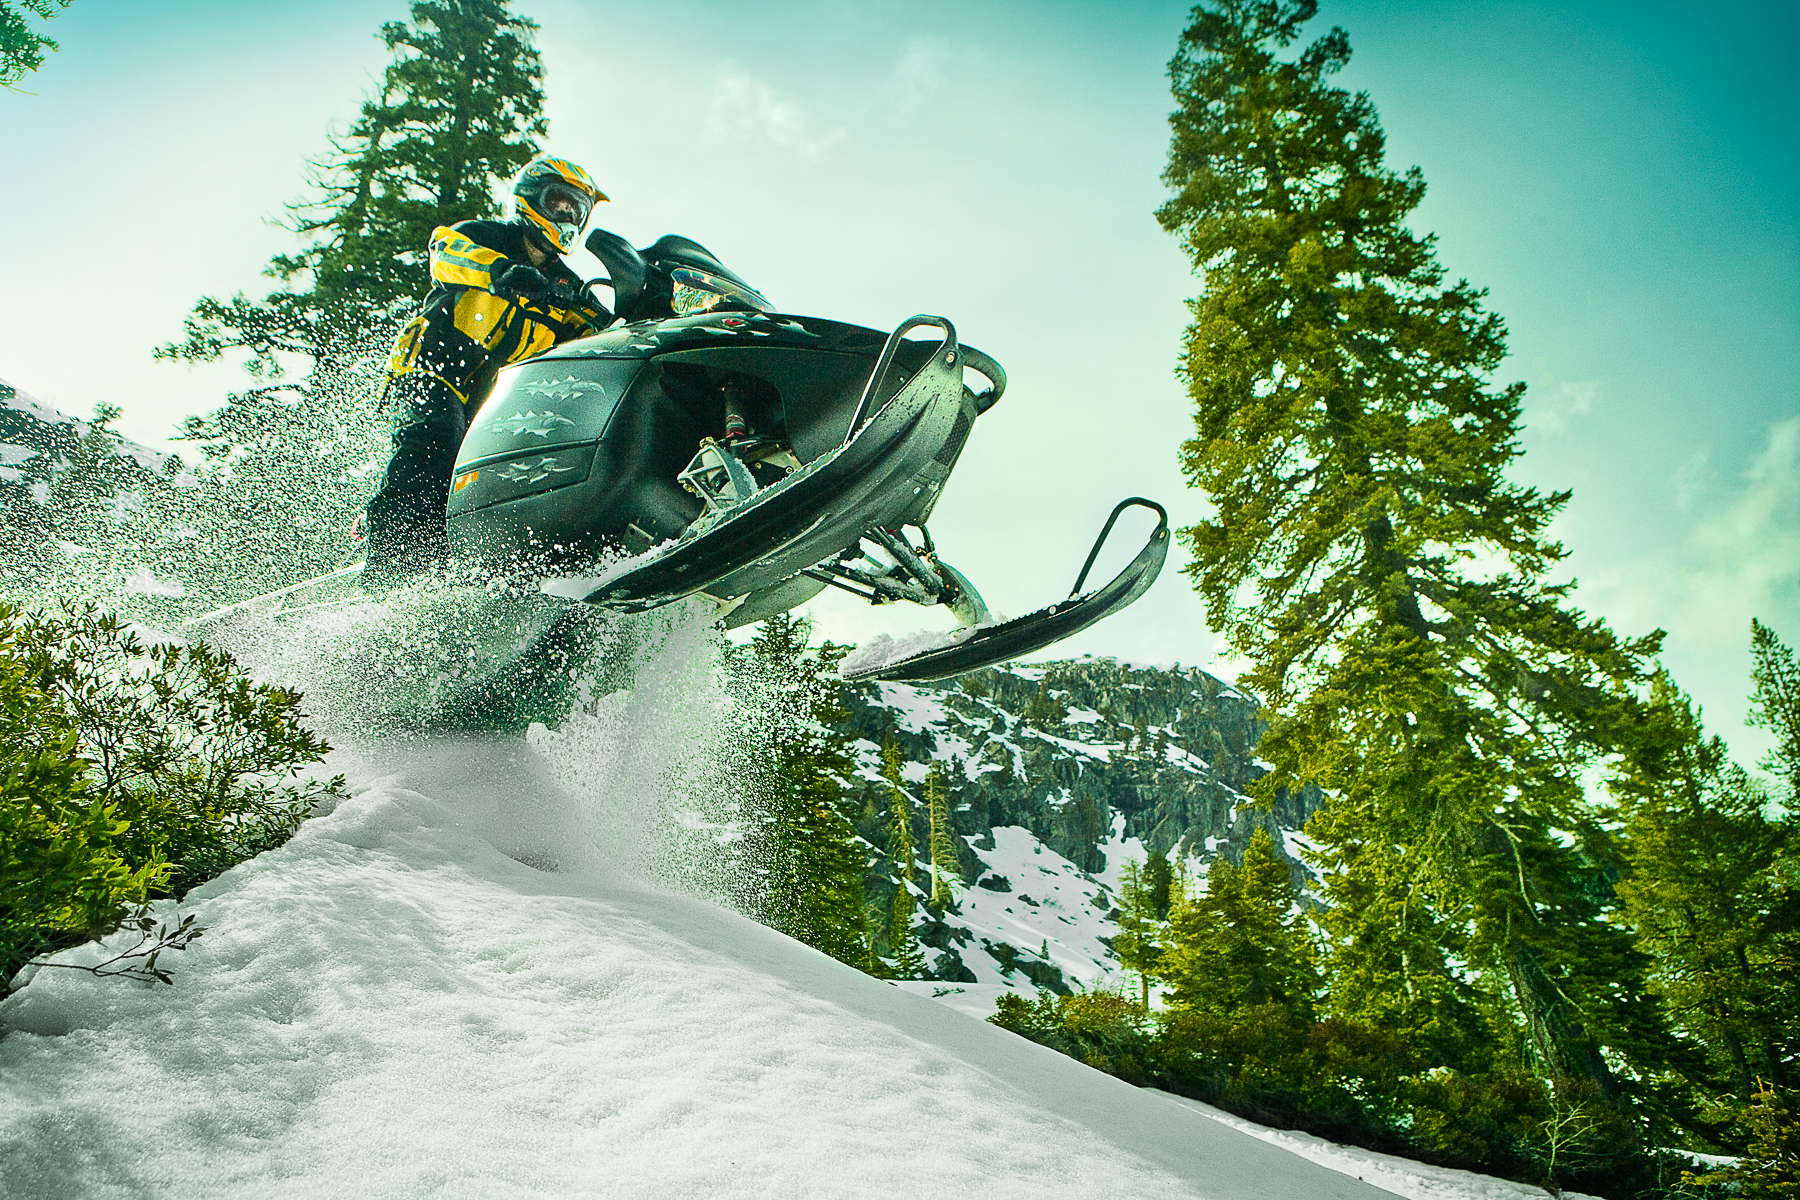 0348_JH_port_hp_tahoe_snowmobile_0002_w5_RGB_